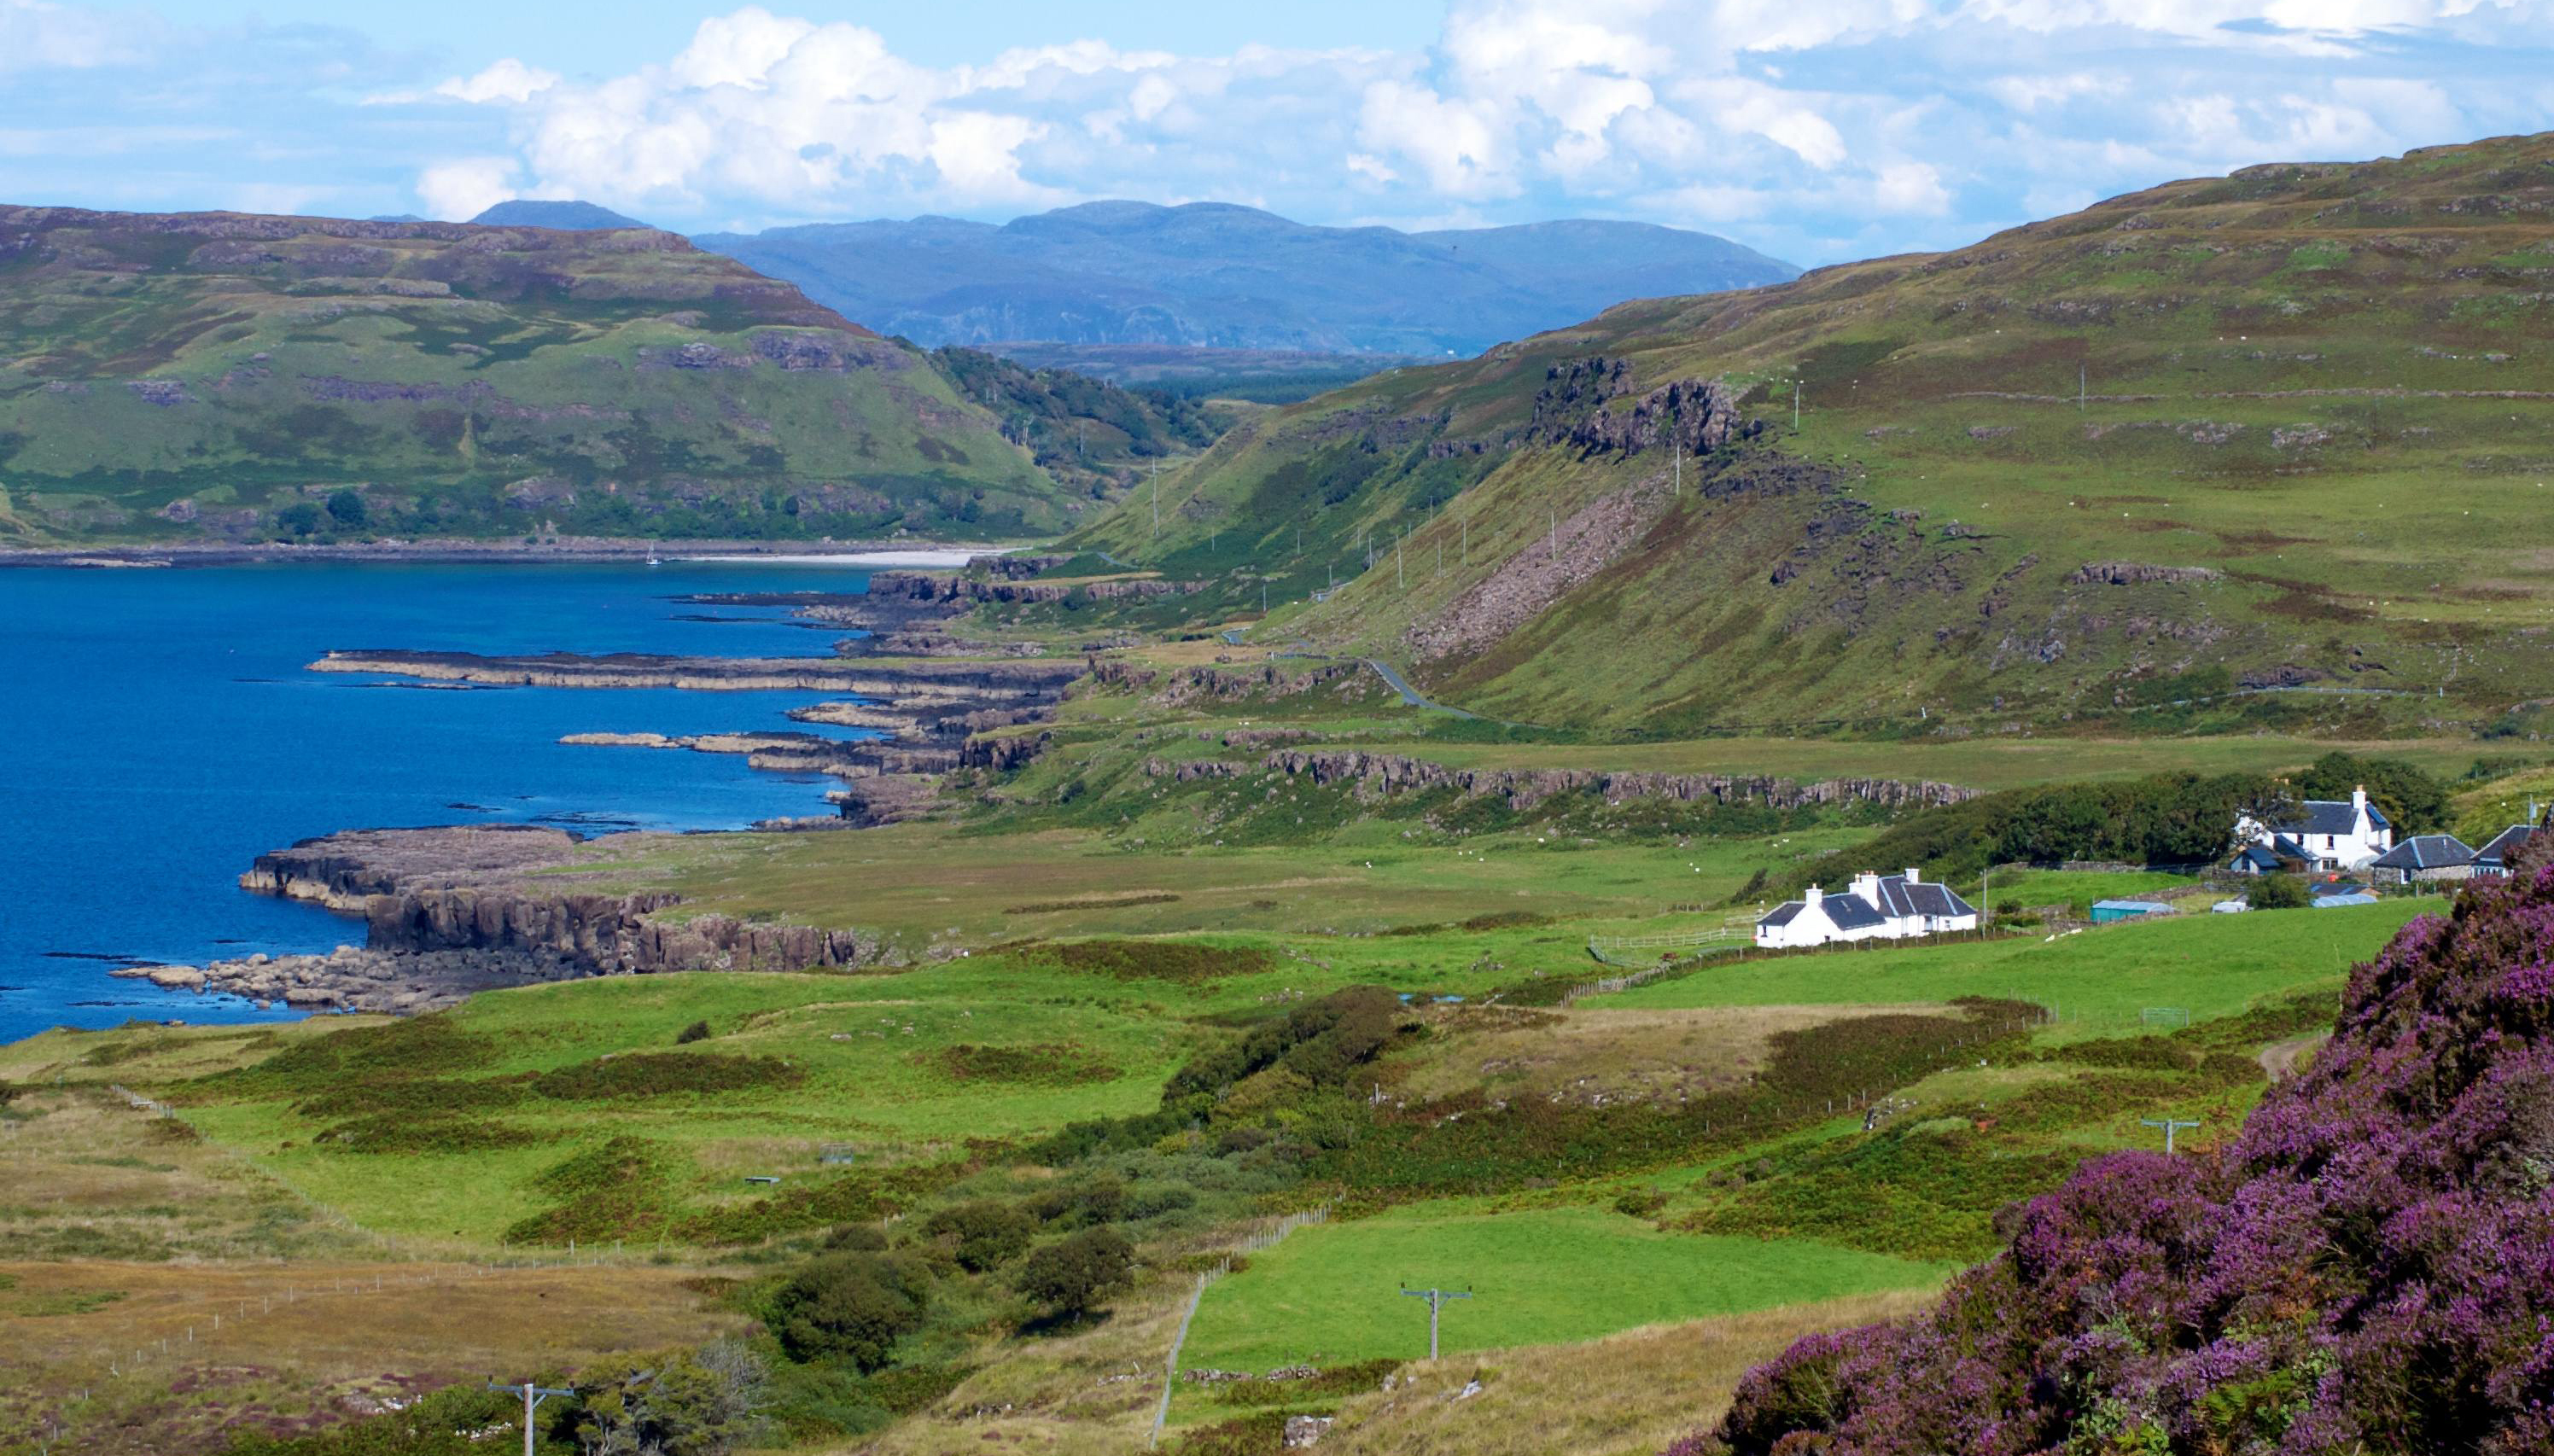 Treshnish Farm in Argyll sits alone in the heart of the Scottish countryside with the coastline just behind